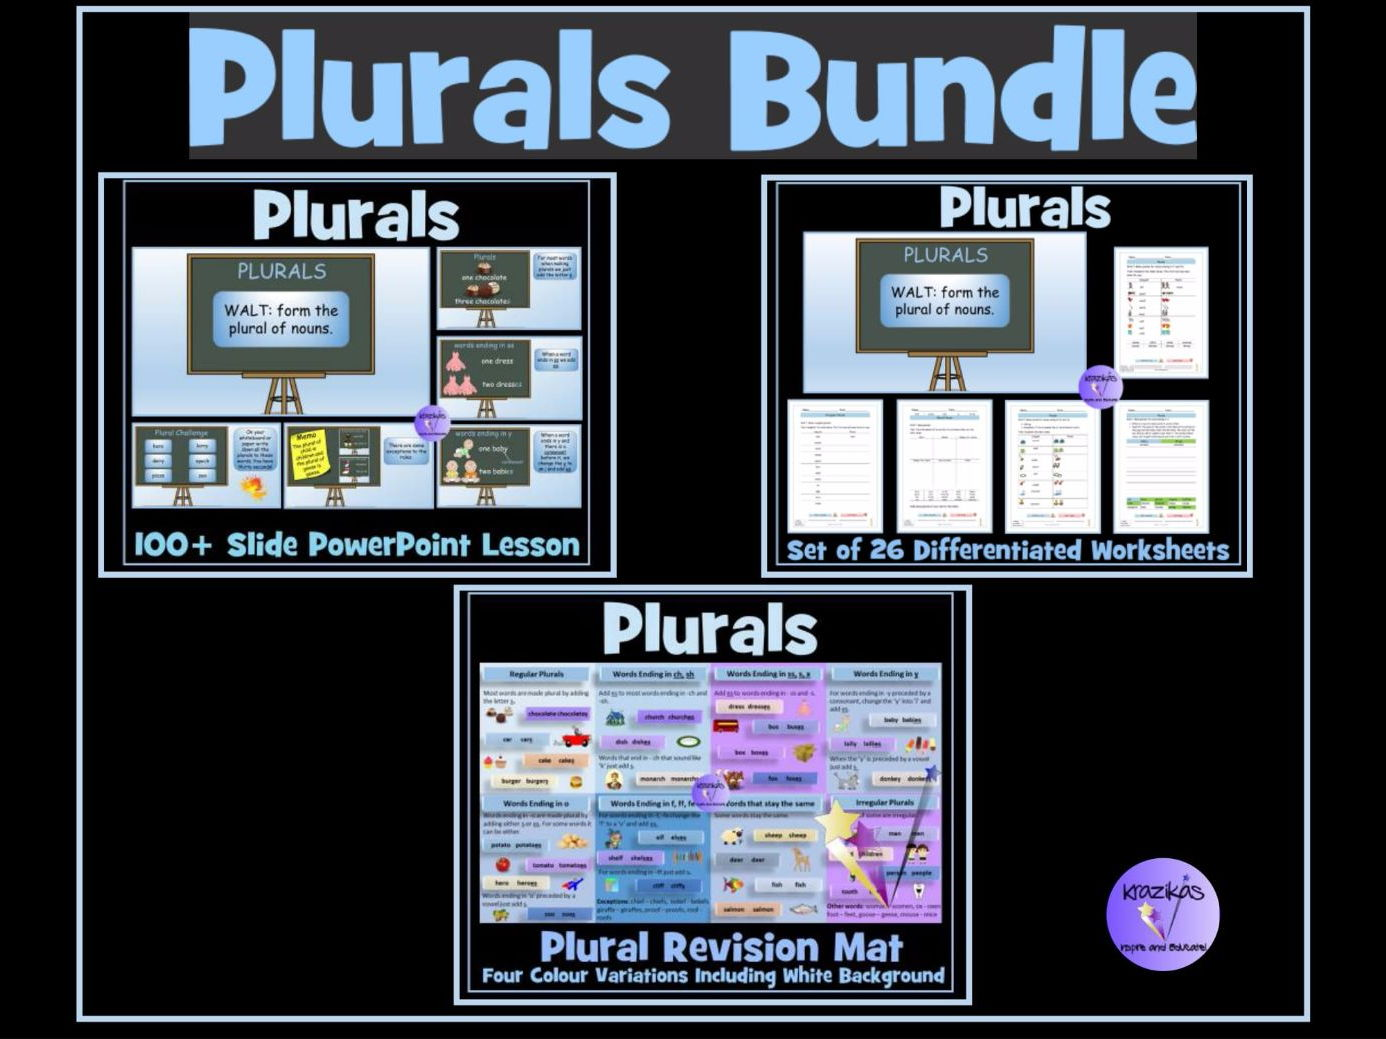 Workbooks making words plural worksheets : Plurals (Regular and Irregular) - Set of 26 Differentiated ...